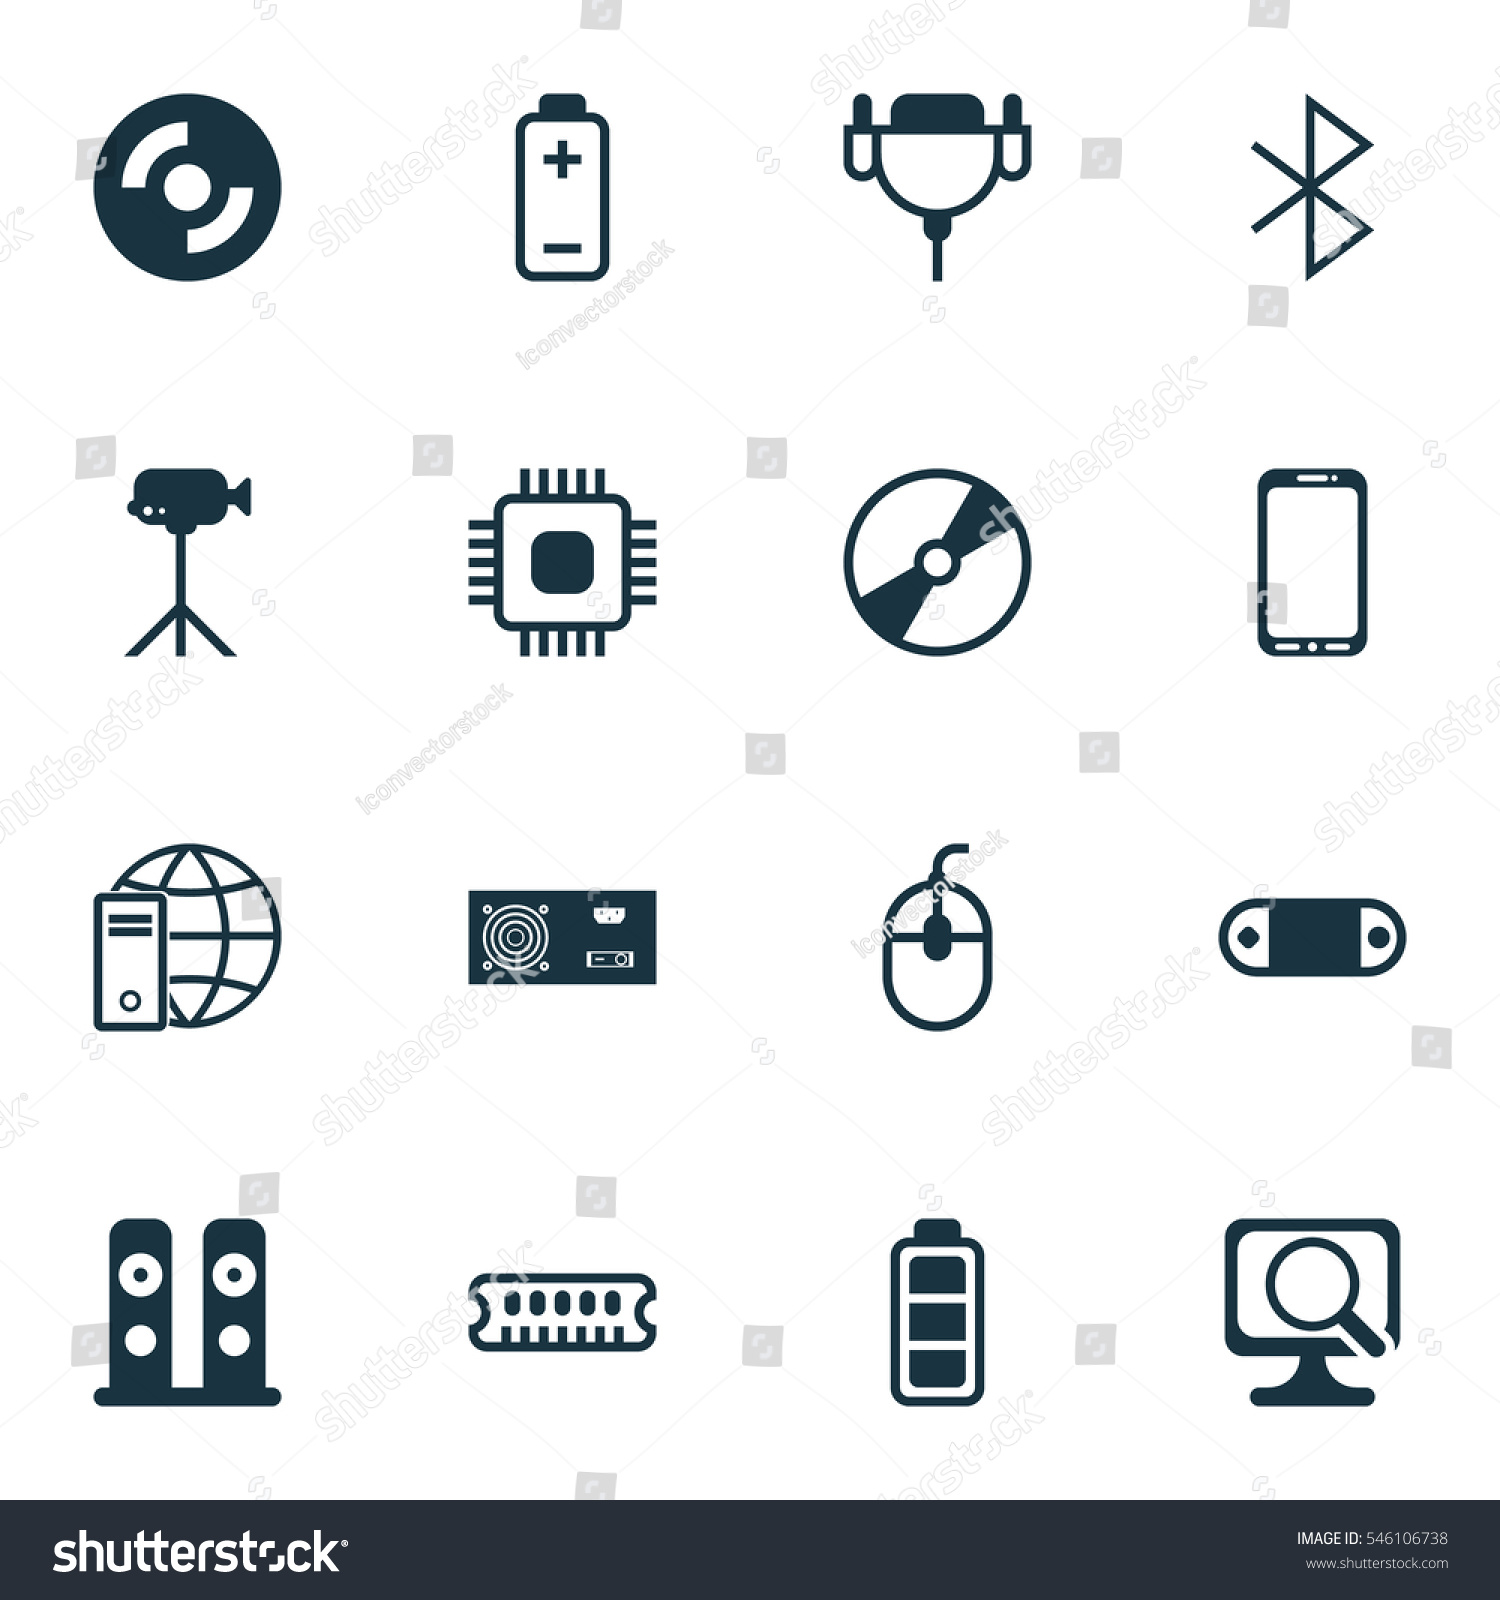 Set 16 Computer Hardware Icons Includes Stock Vector 546106738